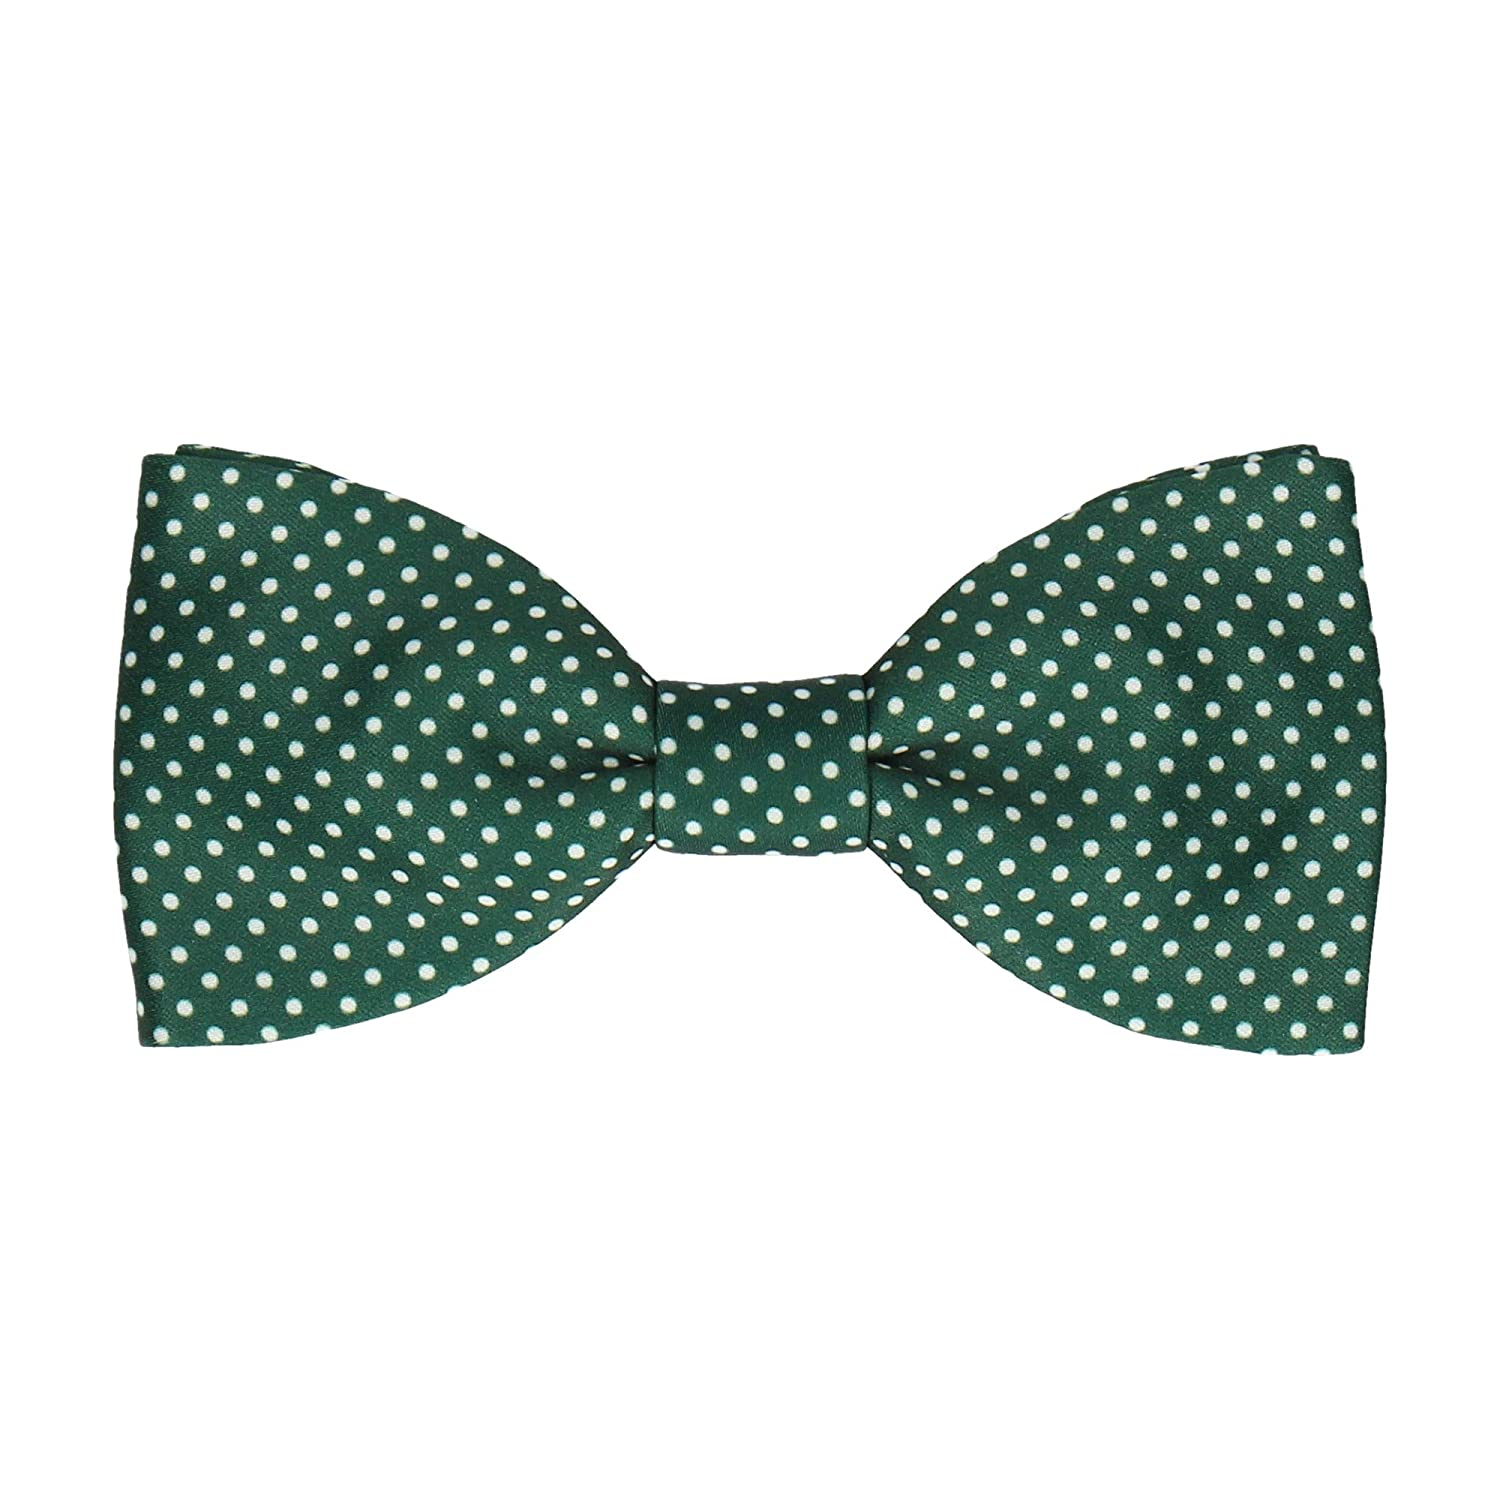 Men's 1920s Style Ties, Neck Ties & Bowties Mrs Bow Tie Bow Tie with Pin Dots Pre-Tied Self-Tying Bow Ties $40.00 AT vintagedancer.com